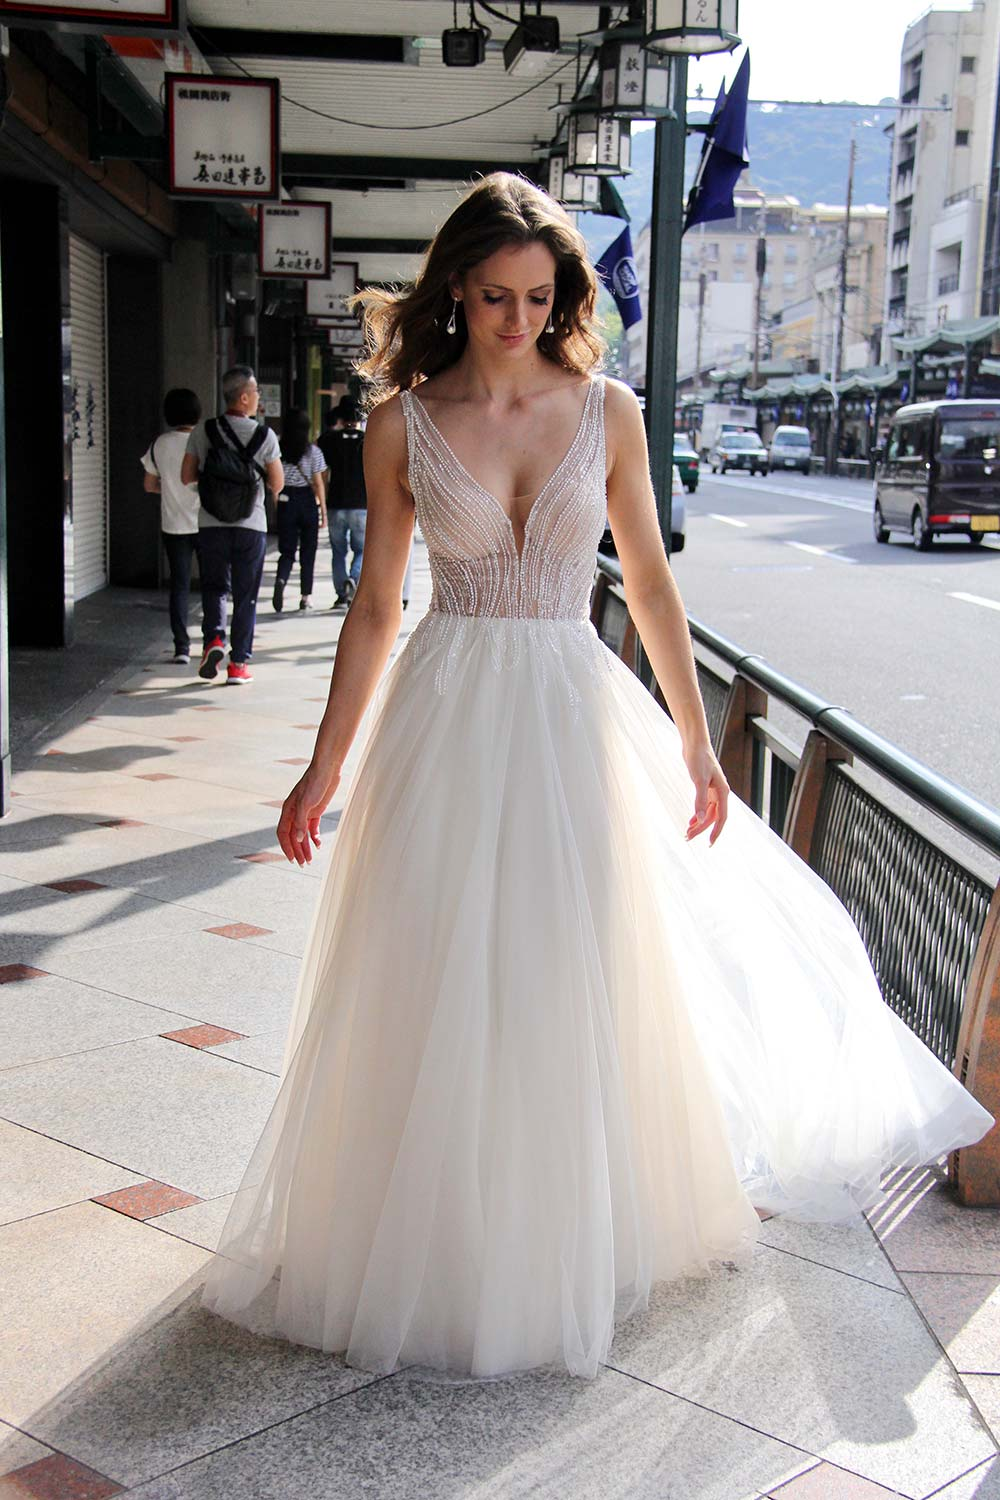 Female model wearing Vinka Design An Oriental Affair Wedding Dress. On a Japanese street the back detail of a gown with a hand-beaded, nude-based, semi sheer bodice with a deep v-neckline and low back with a tulle skirt.